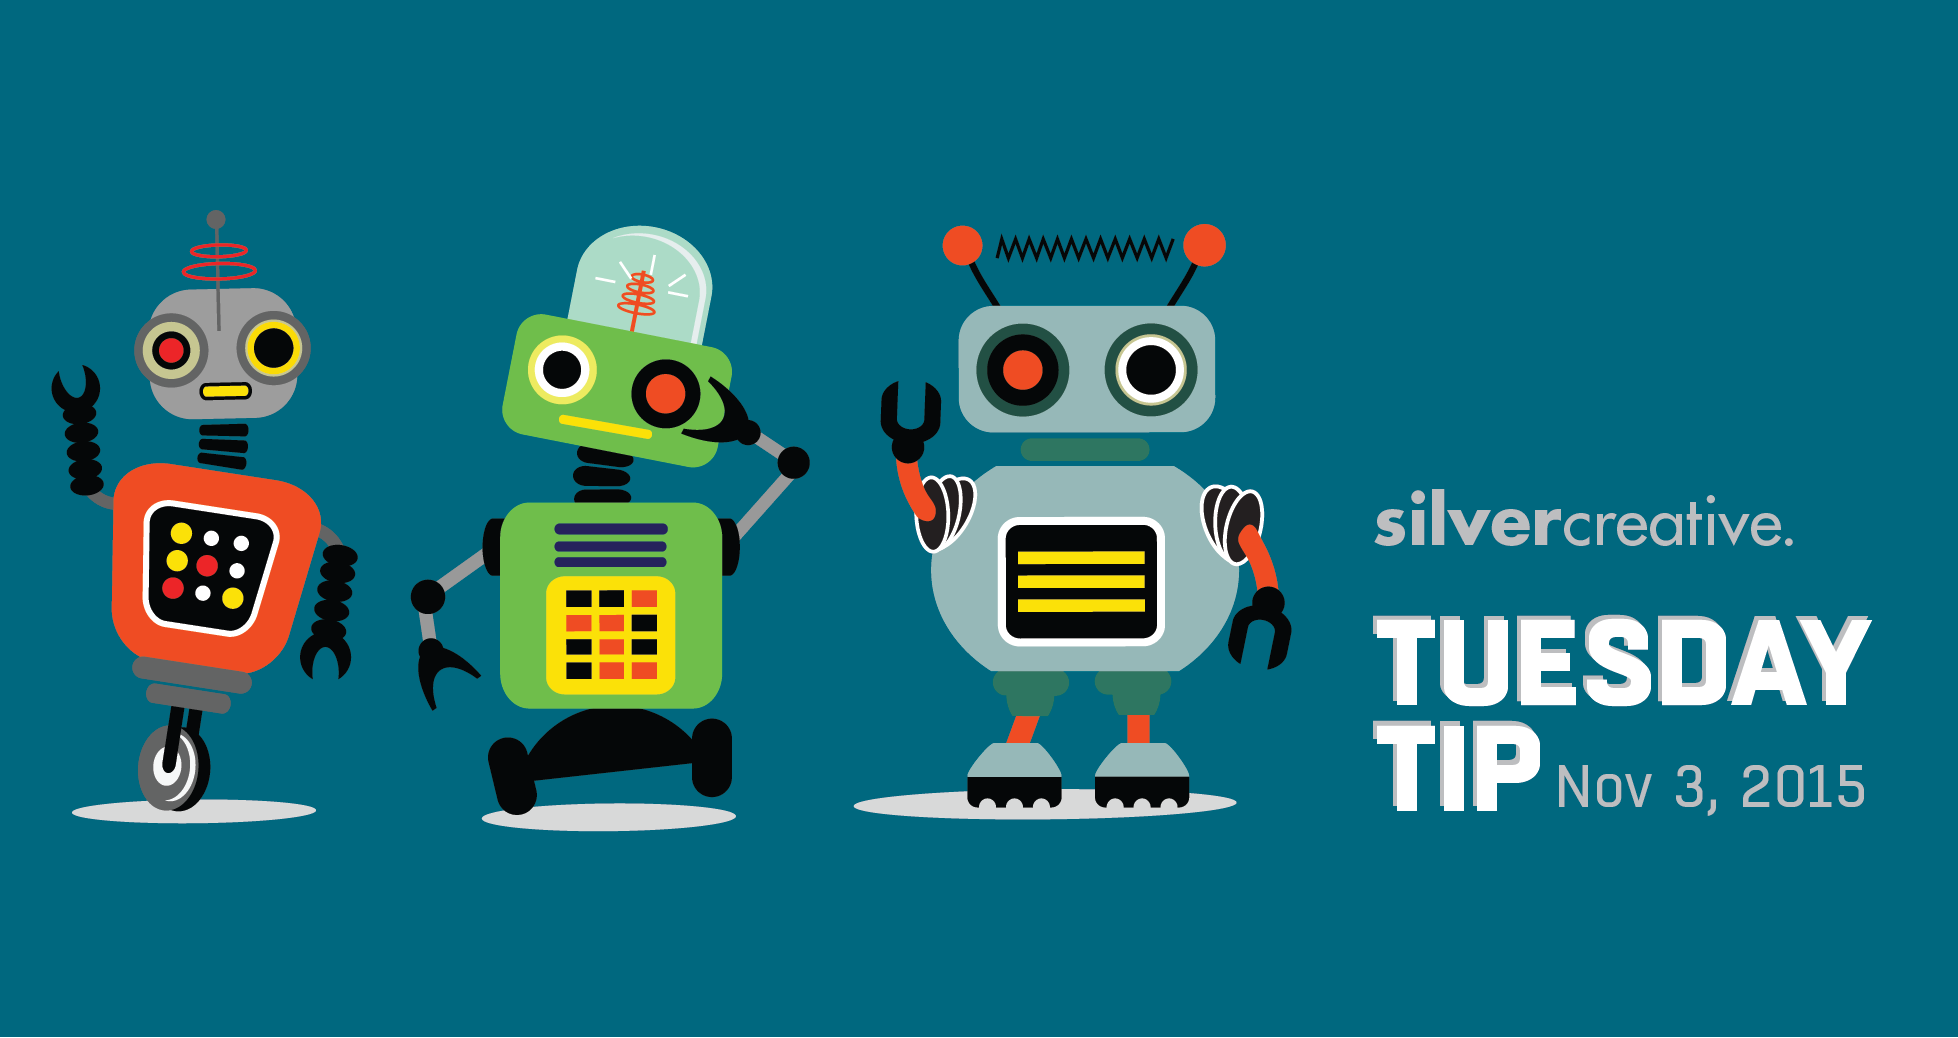 Tuesday Tip Of The Week #143 – Google Introduces AI to Search